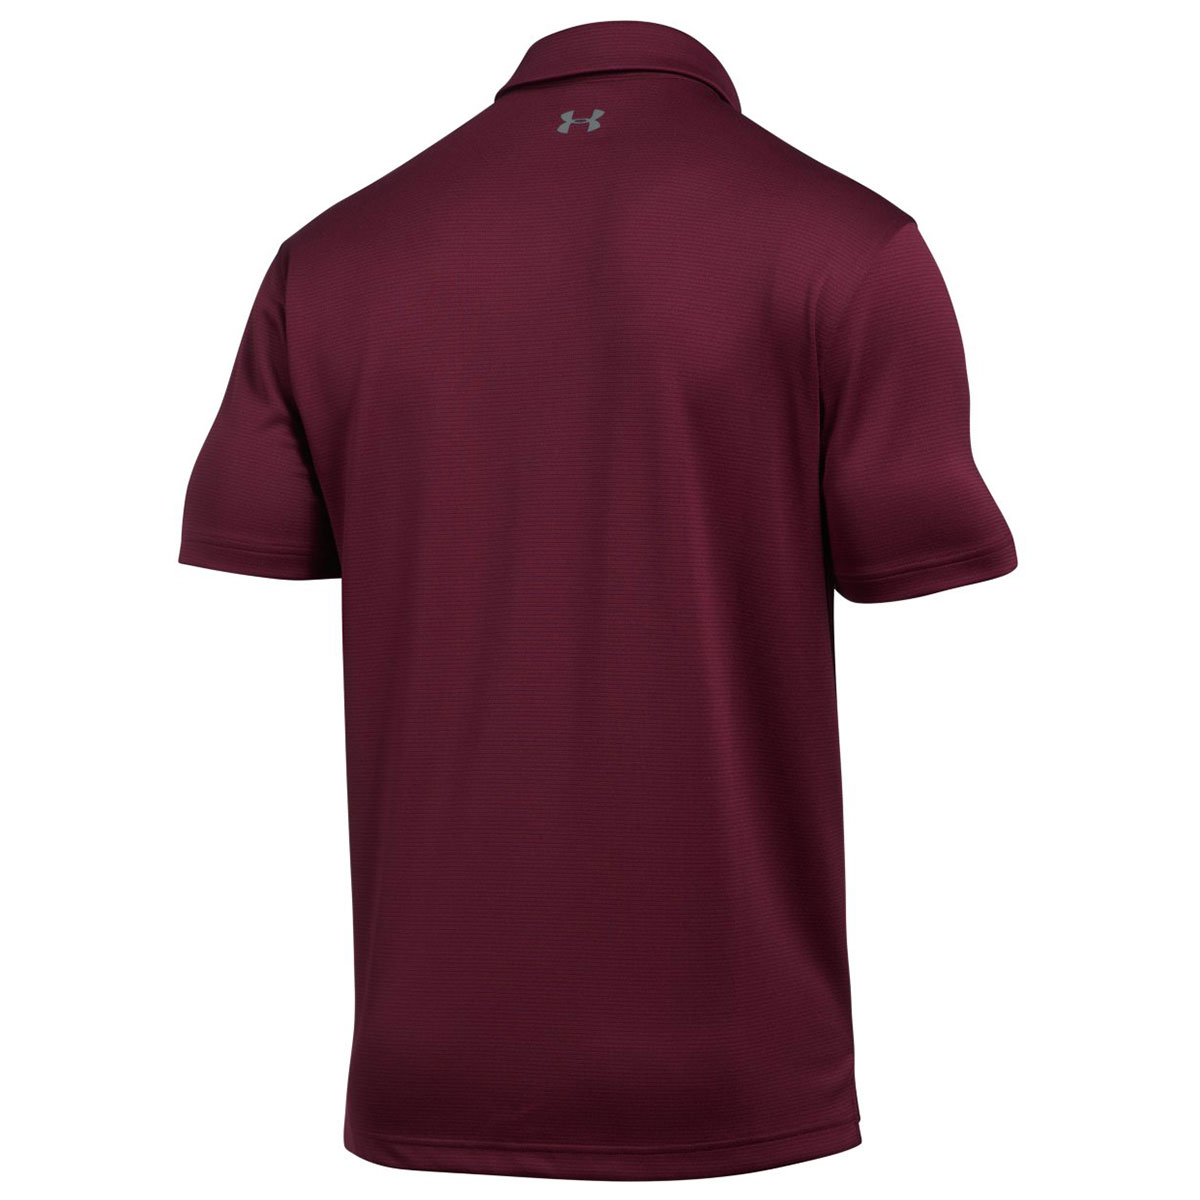 Under-Armour-Mens-2019-Golf-Tech-Wicking-Textured-Soft-Light-Polo-Shirt thumbnail 49